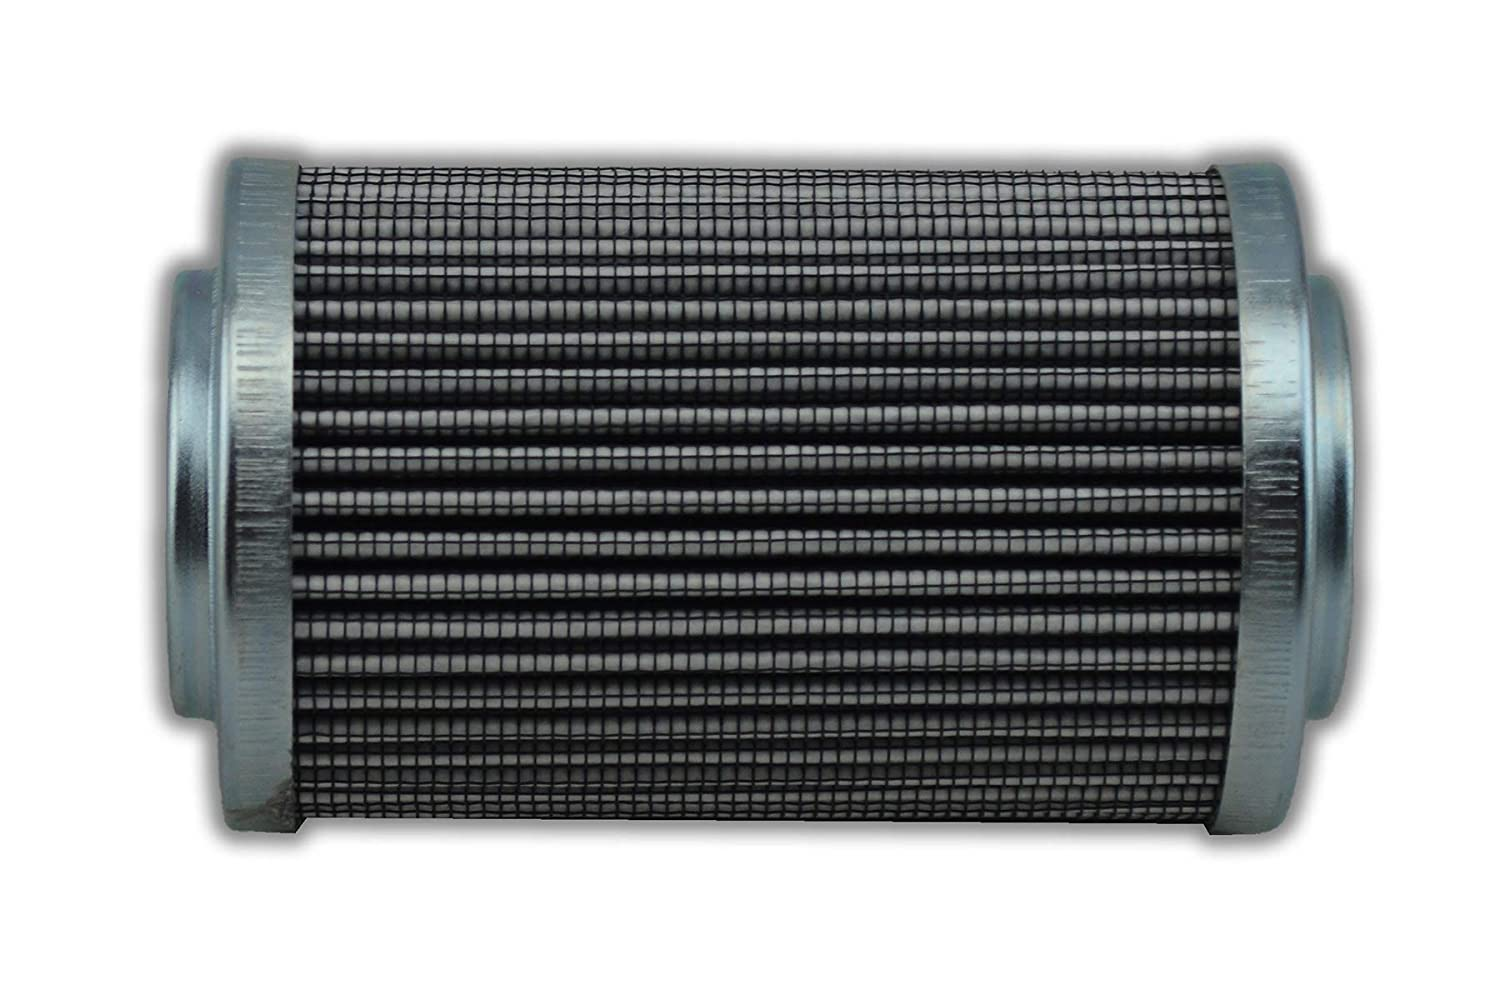 Qty 1 AFE 02060431 HYDAC//HYCON Direct Replacement Hydraulic Filter